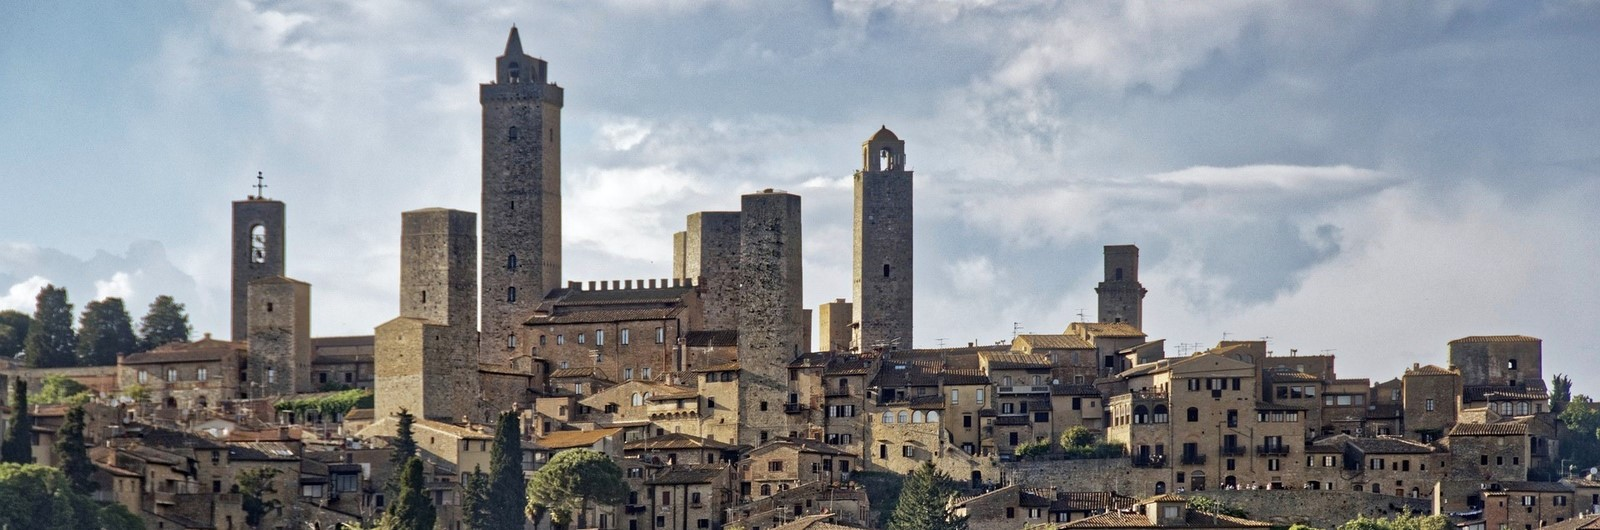 tuscany city header